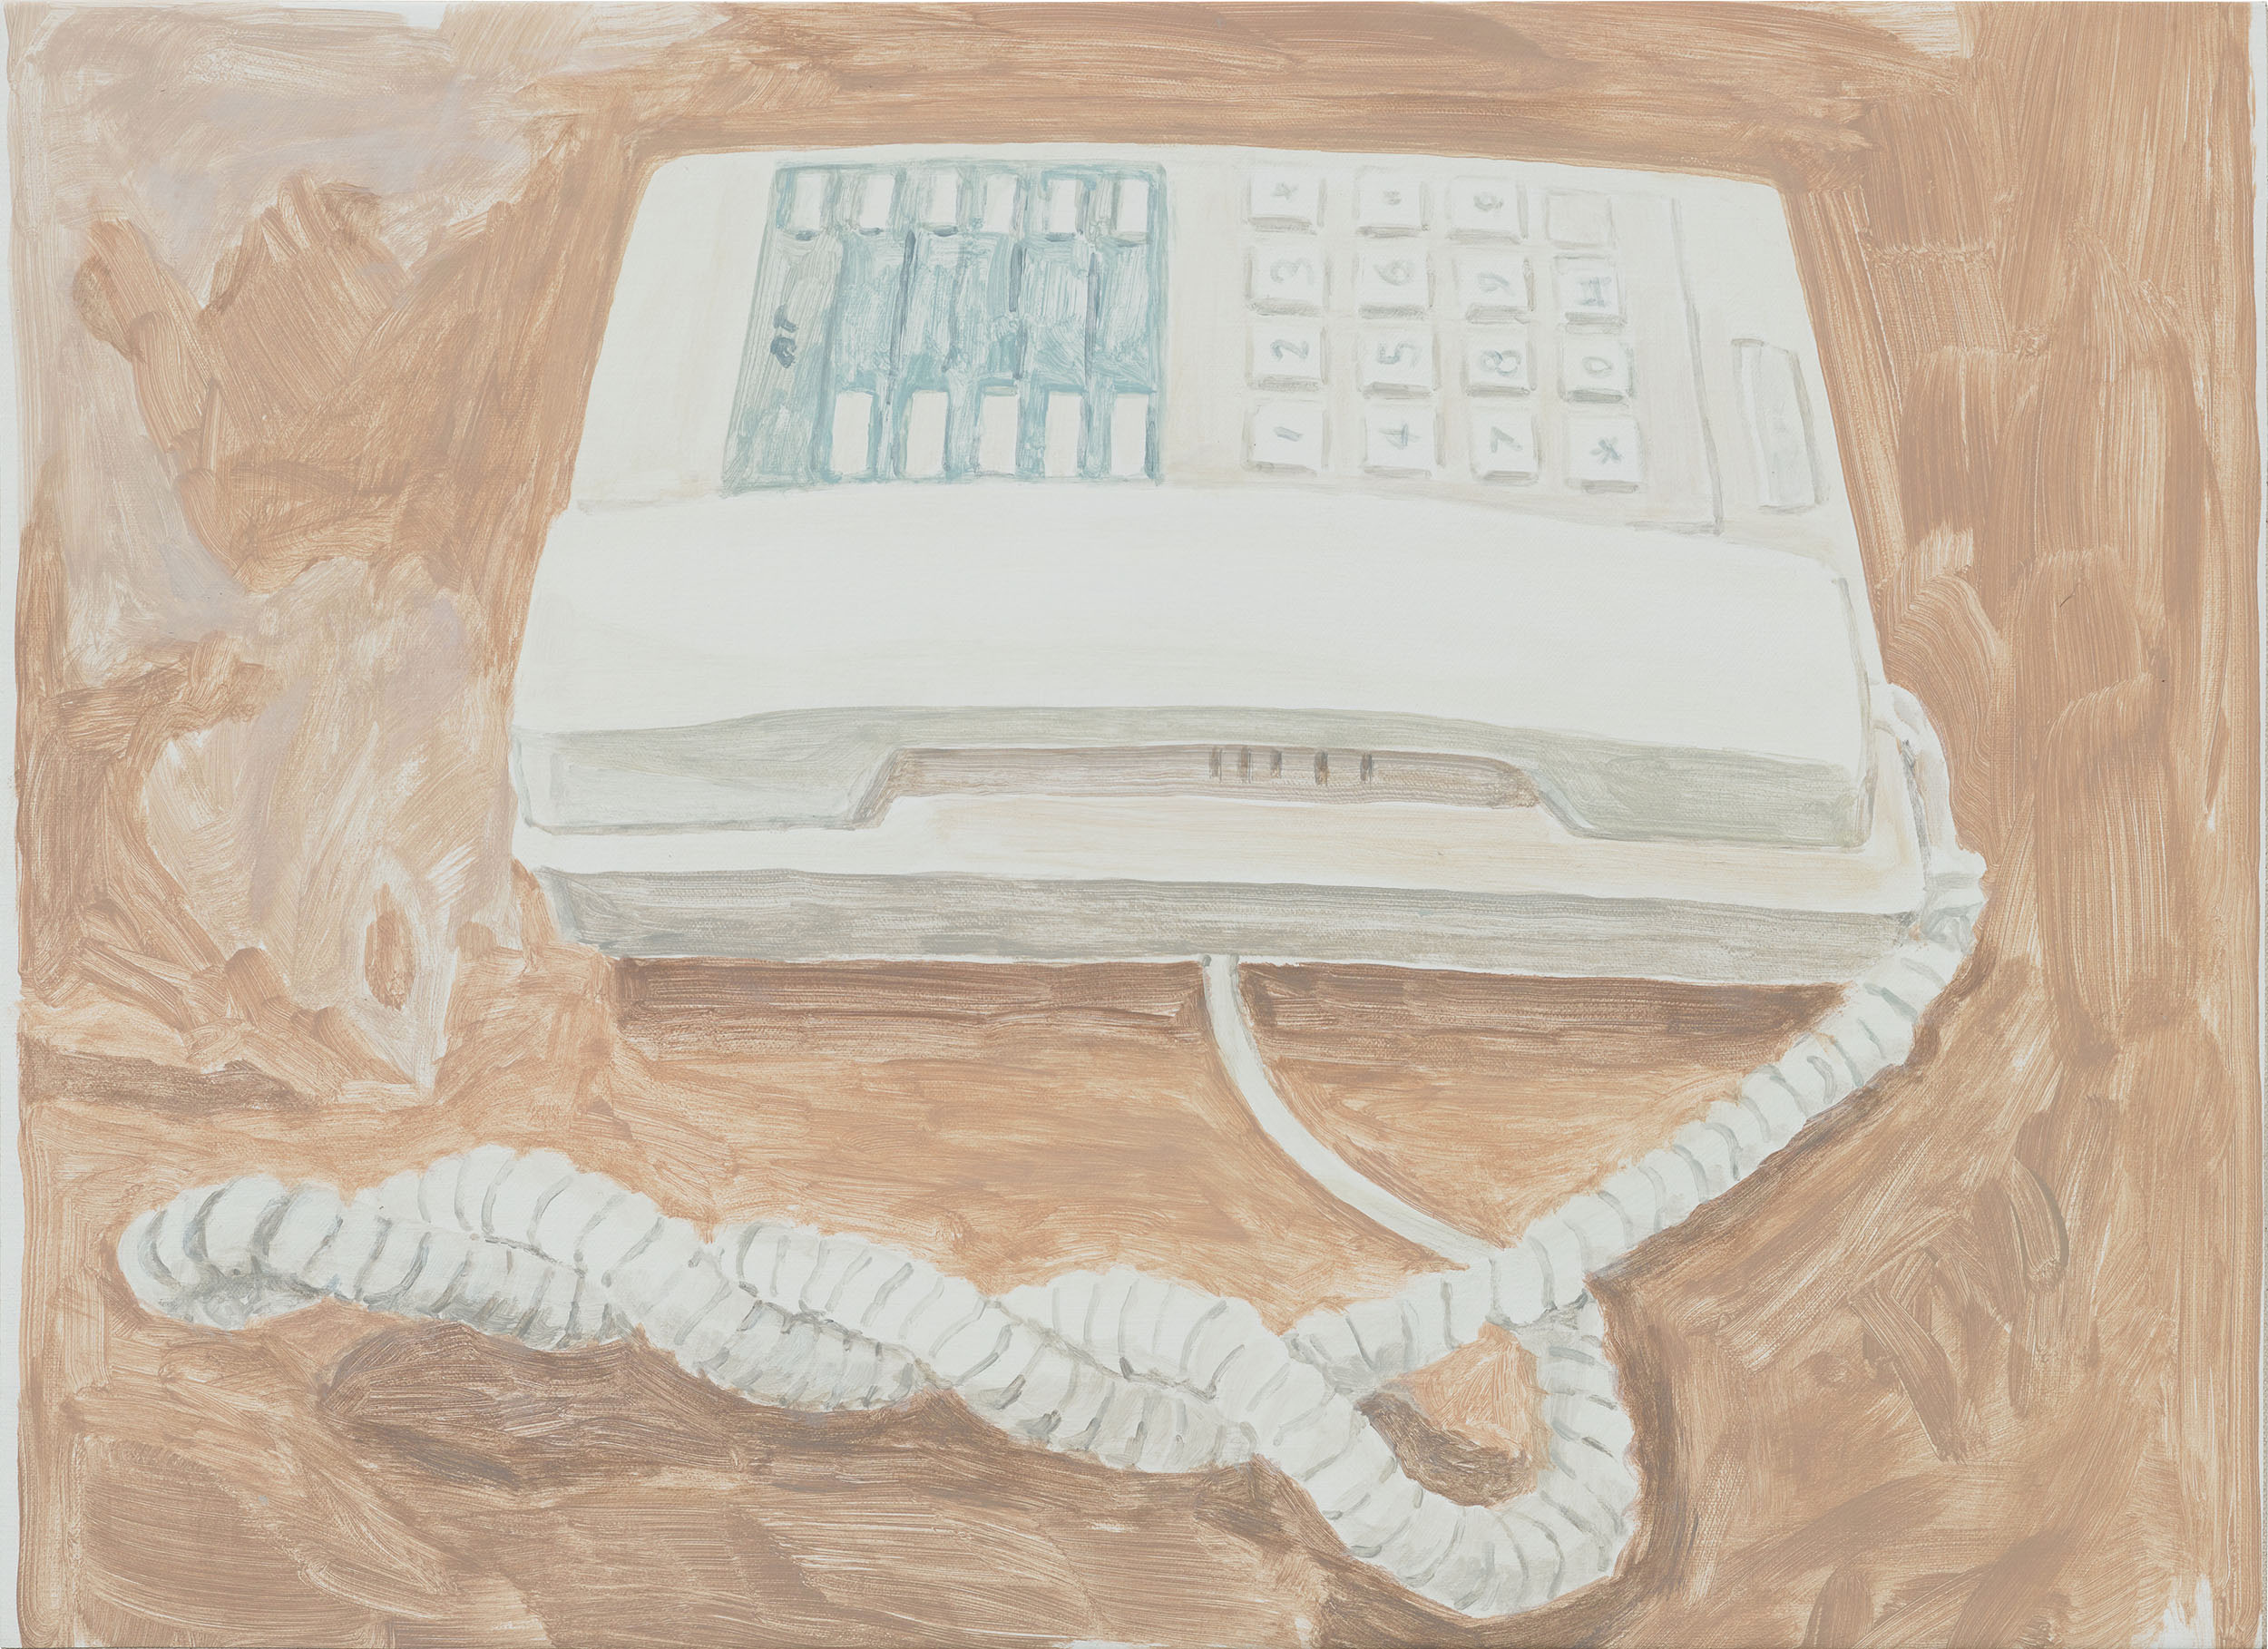 Telephone, acrylic on canvas over board, 16 x 22-1/4 inches, 2017.